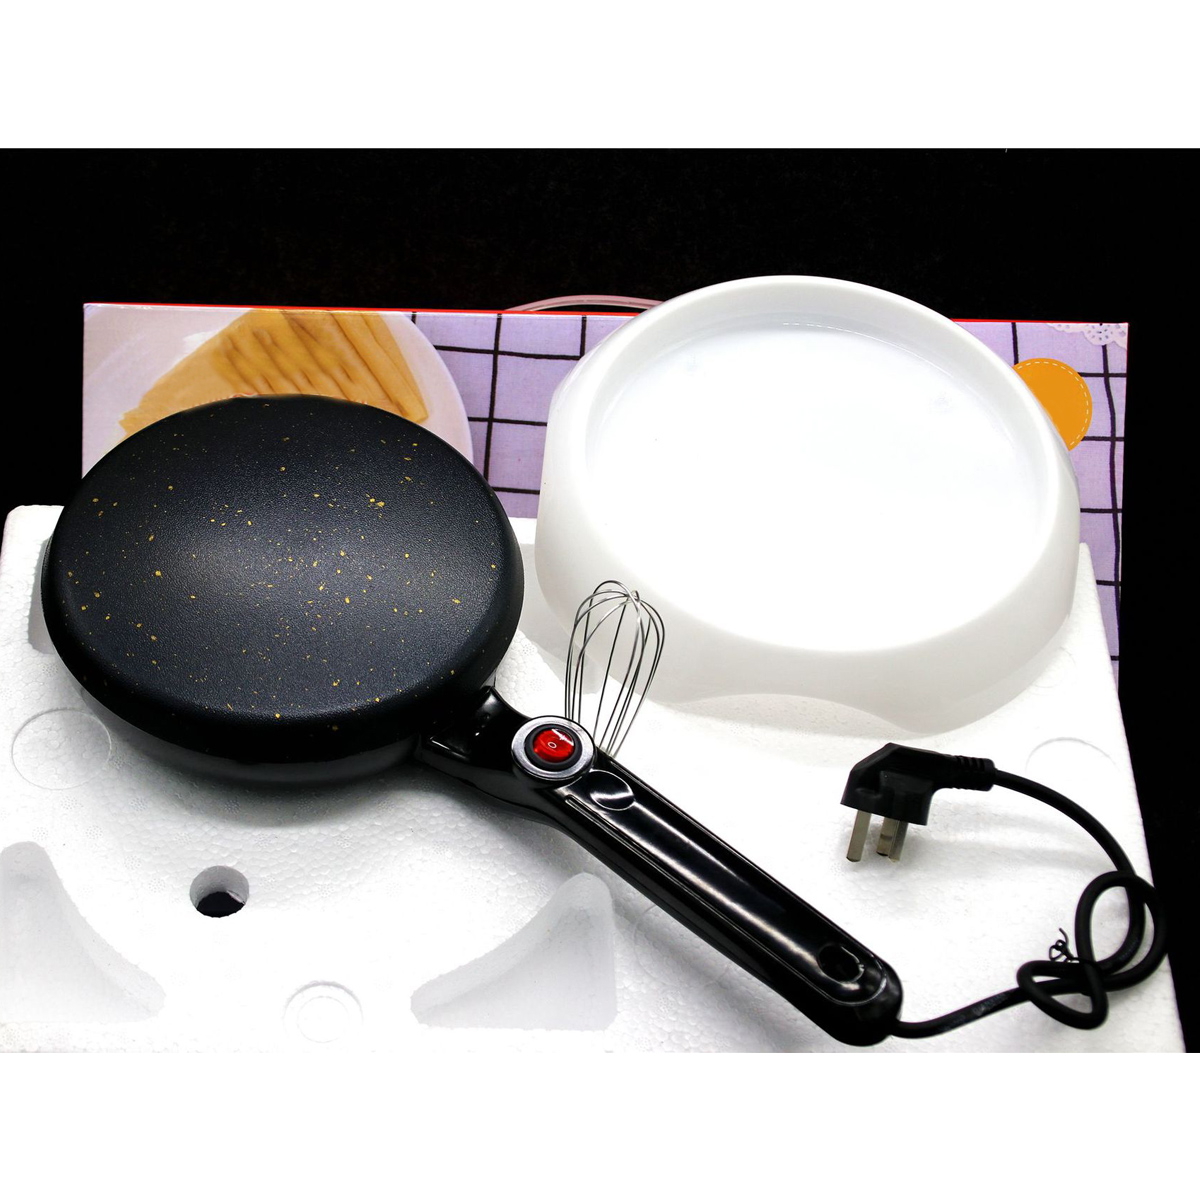 600W Kitchen Electric Griddle Pancake Baking Crepe Maker Pan Pizza Cake Non Stick Machine Home DIY Cooking Tools With EggBeater|Crepe Makers| |  -